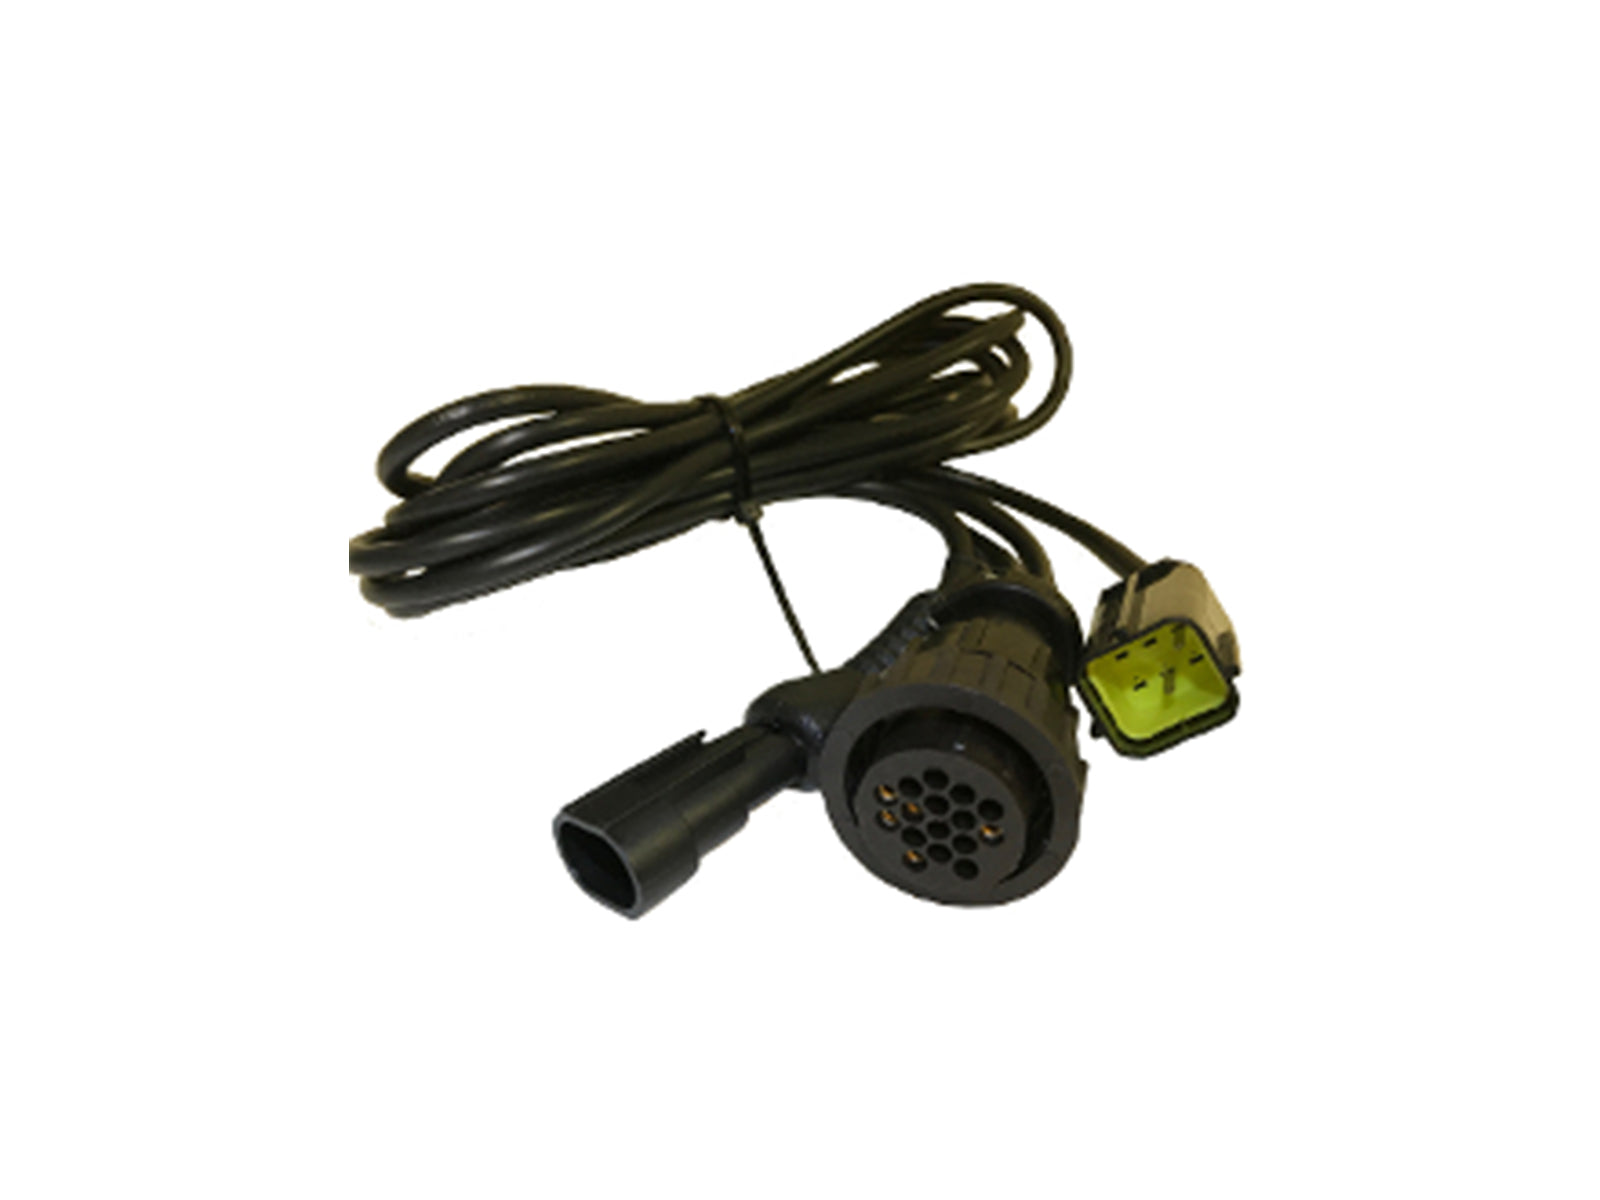 TEXA Bike SWM Diagnostic Cable (3151/AP51)